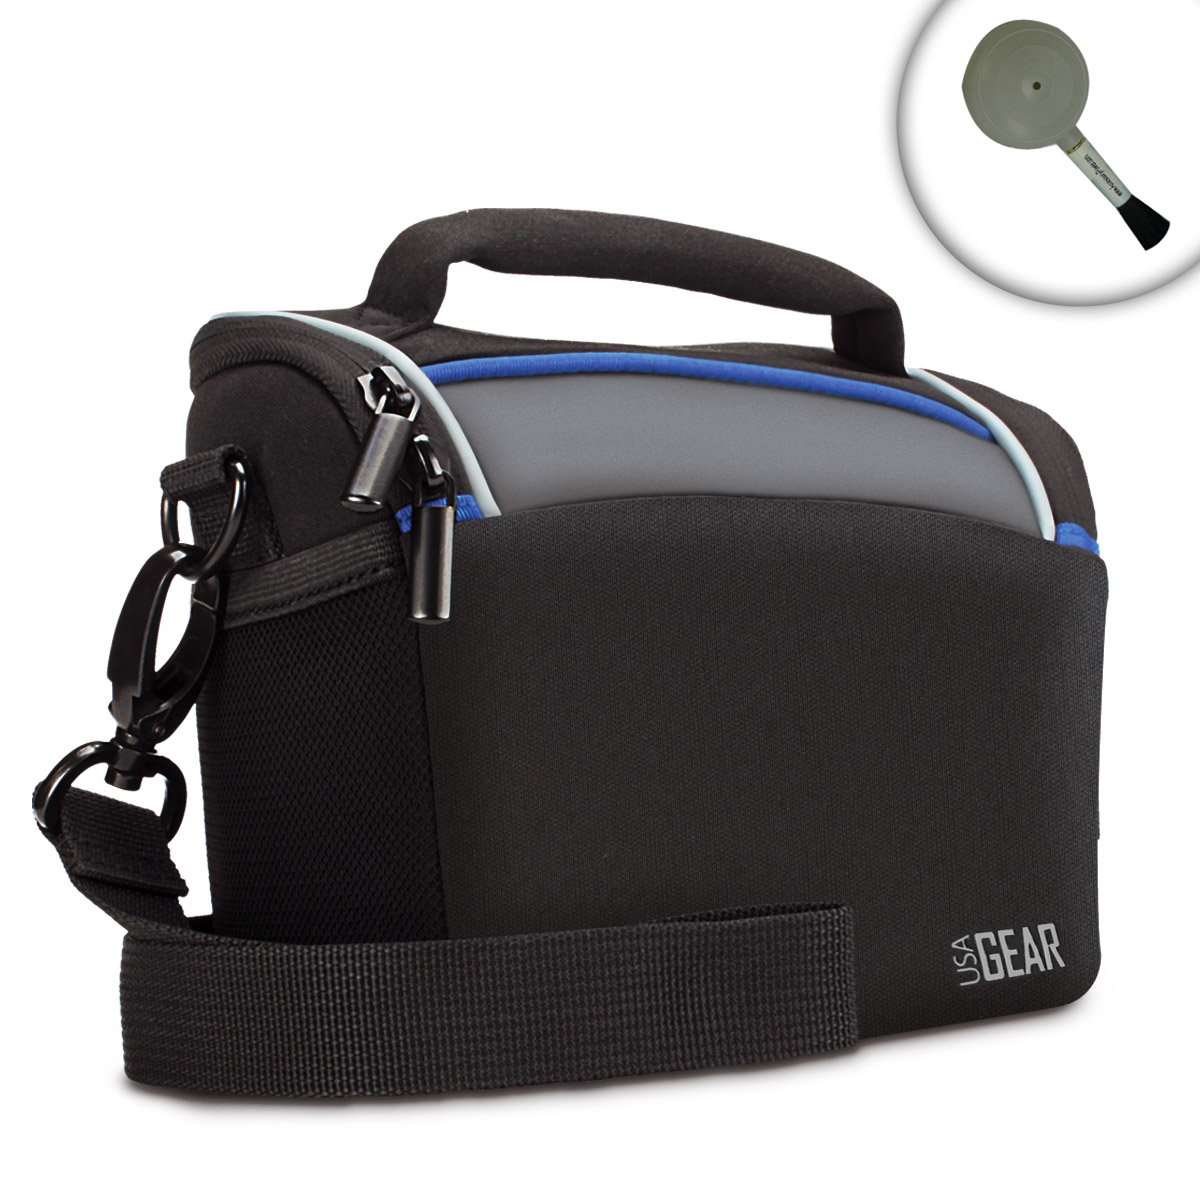 Durable Protective Digital Camera Bag With Airbrush For Panasonic Cams by USA Gear